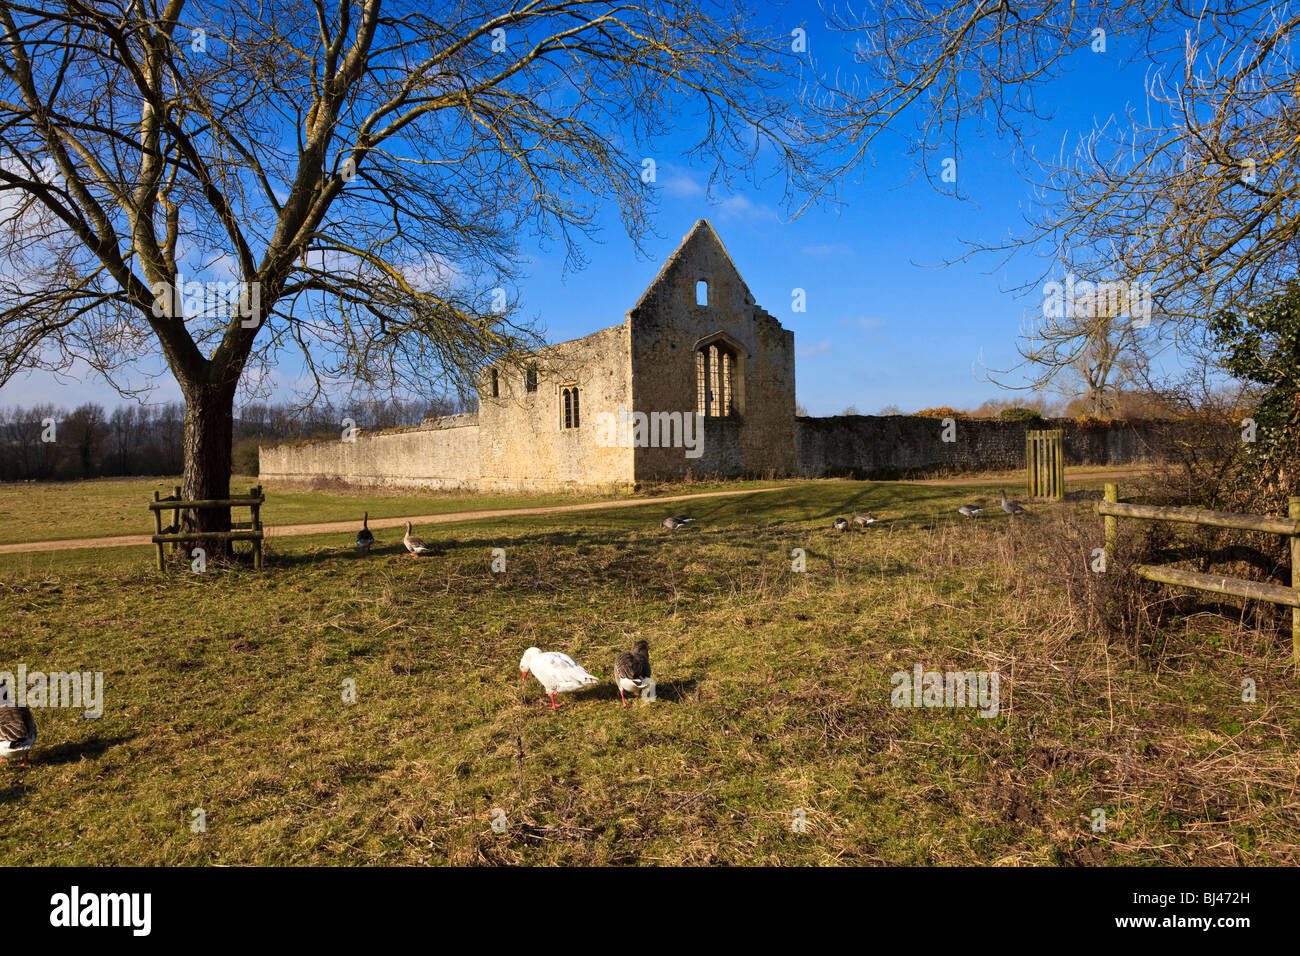 Ruins of Godstow Nunnery Rumoured to be Haunted by the Ghost of Fair Rosamund Mistress of Henry II, Oxford Oxfordshire - Stock Image